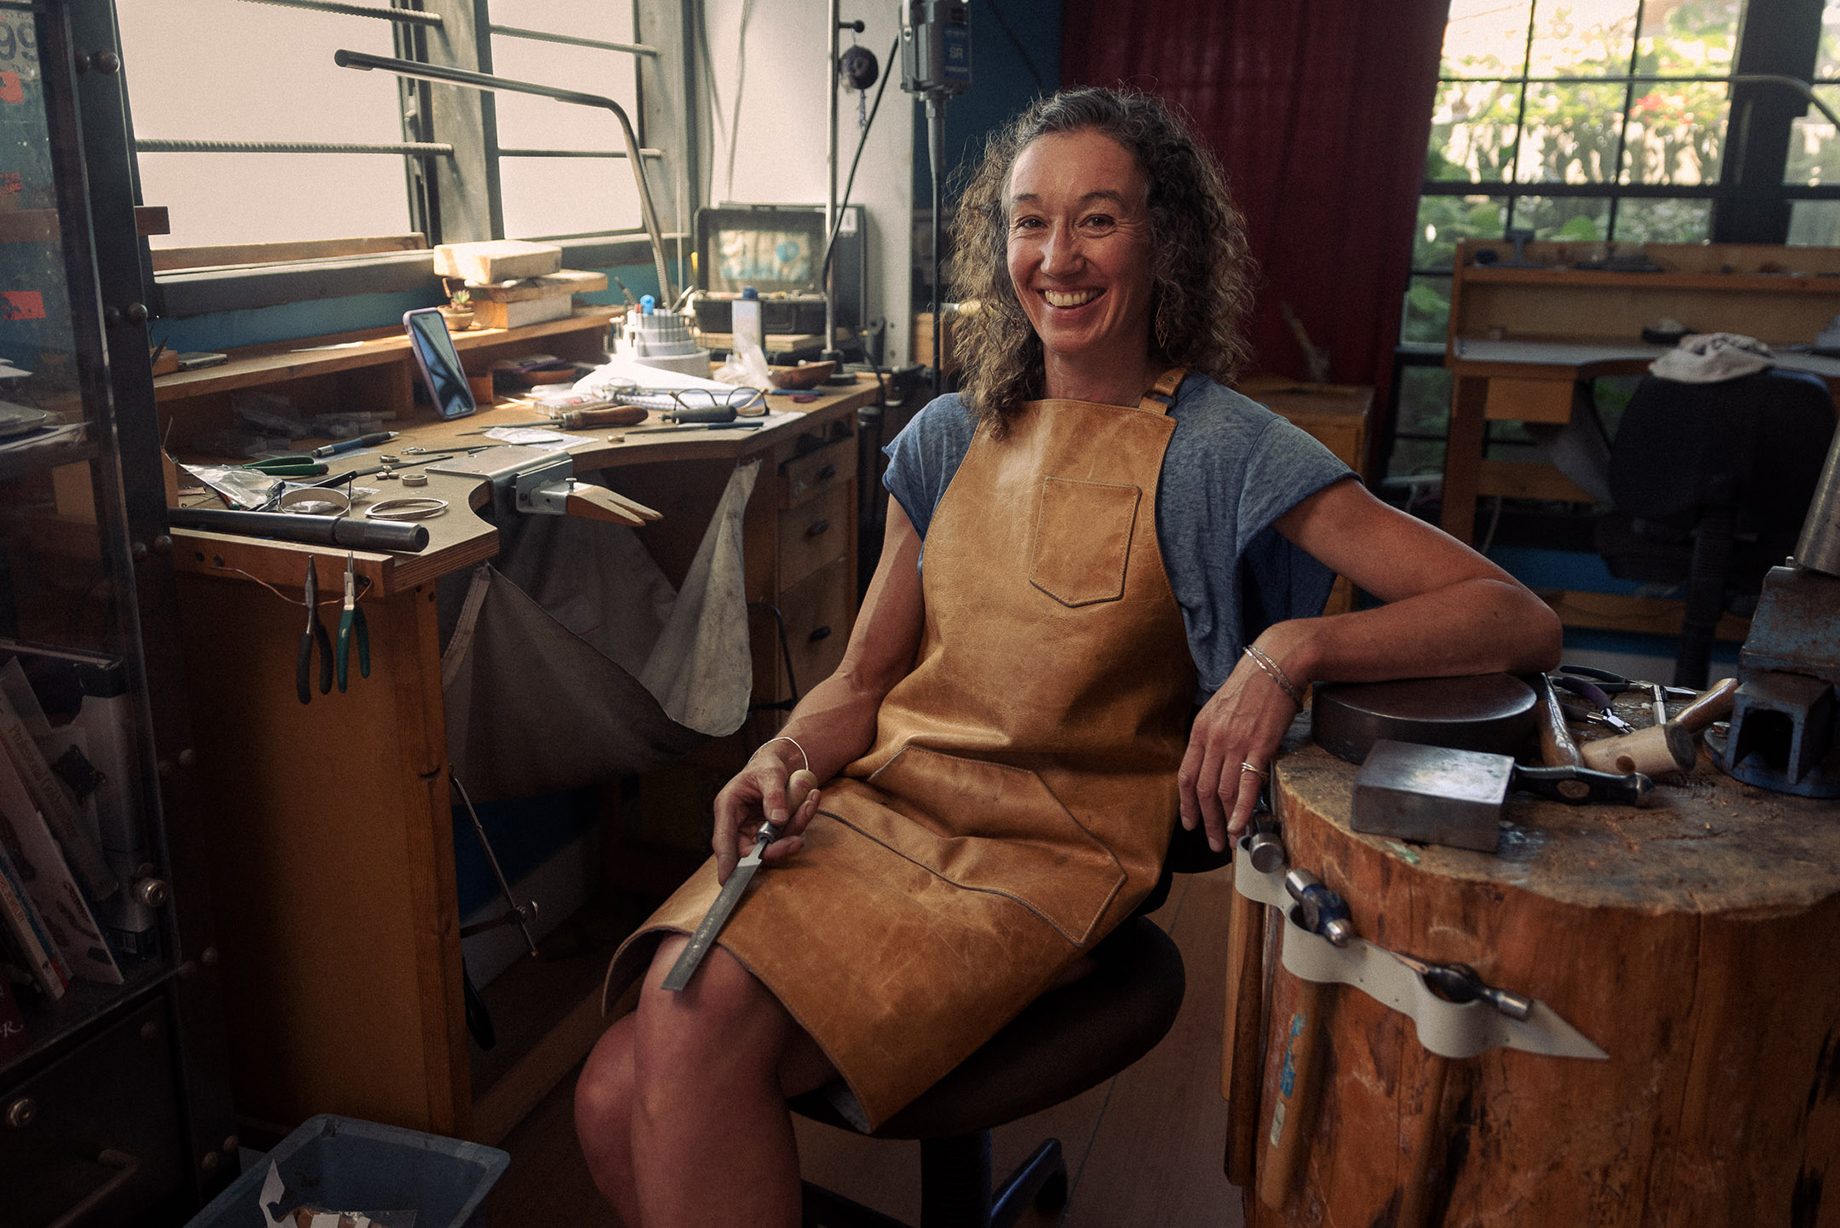 Jewelry maker in her workshop shot by Christian Tisdale for Makers series